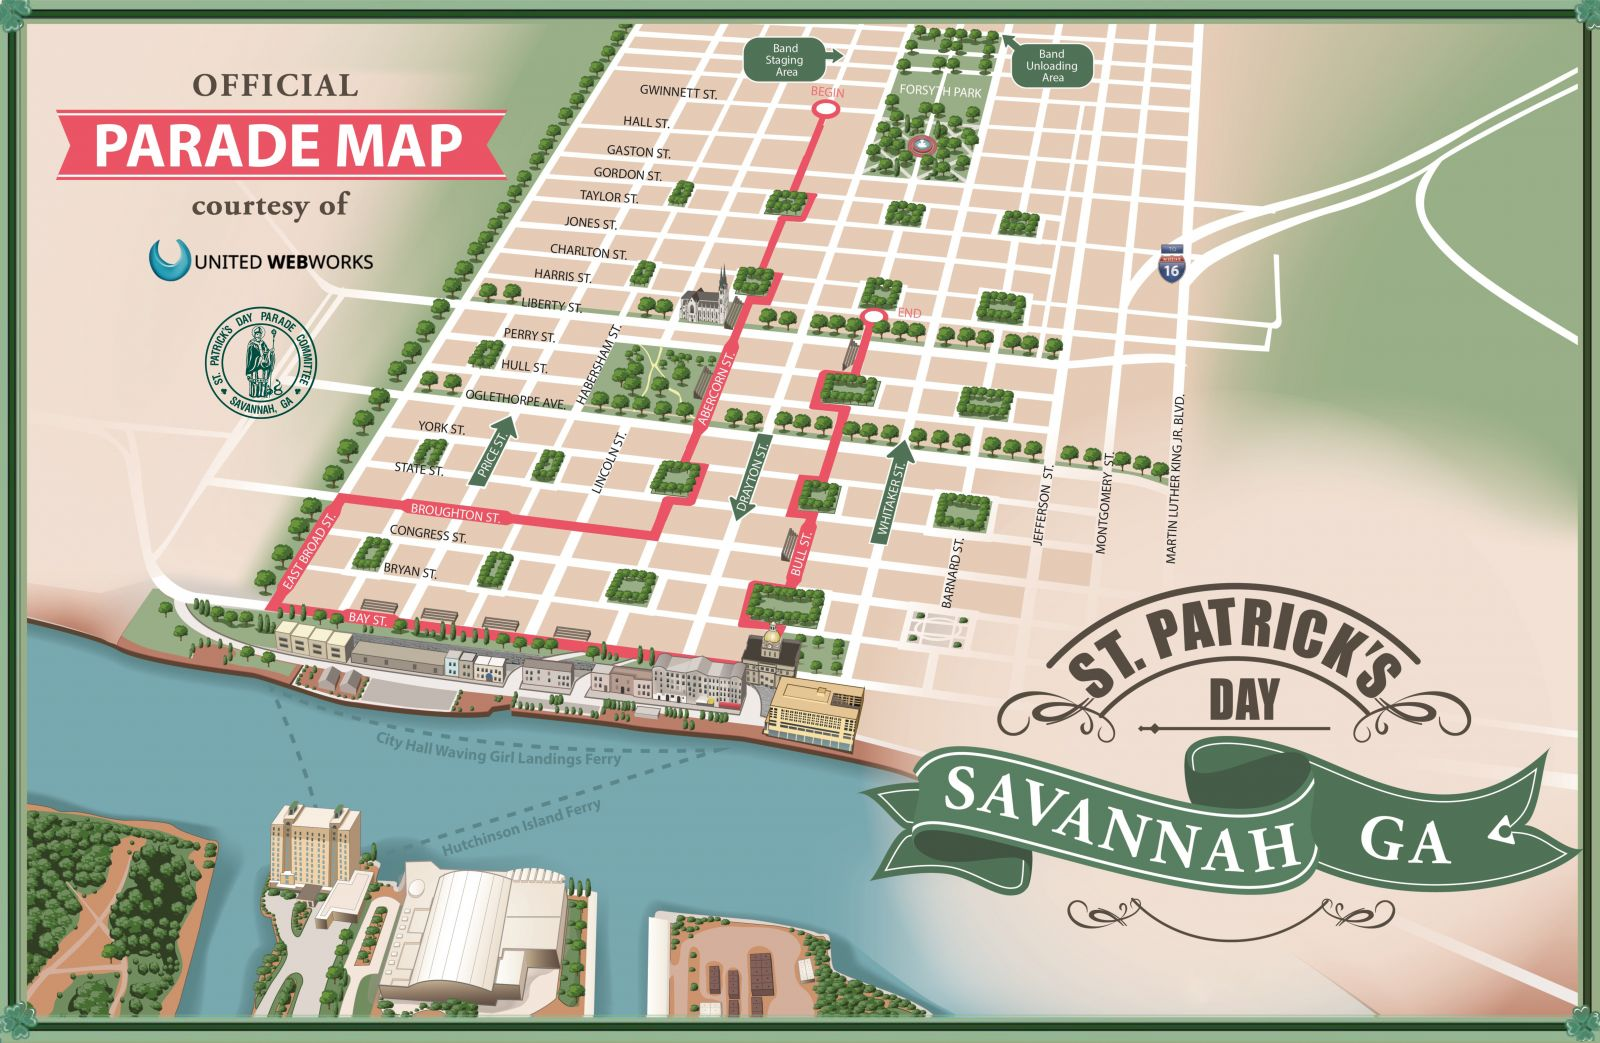 St. Patrick's Day Savannah Parade Map